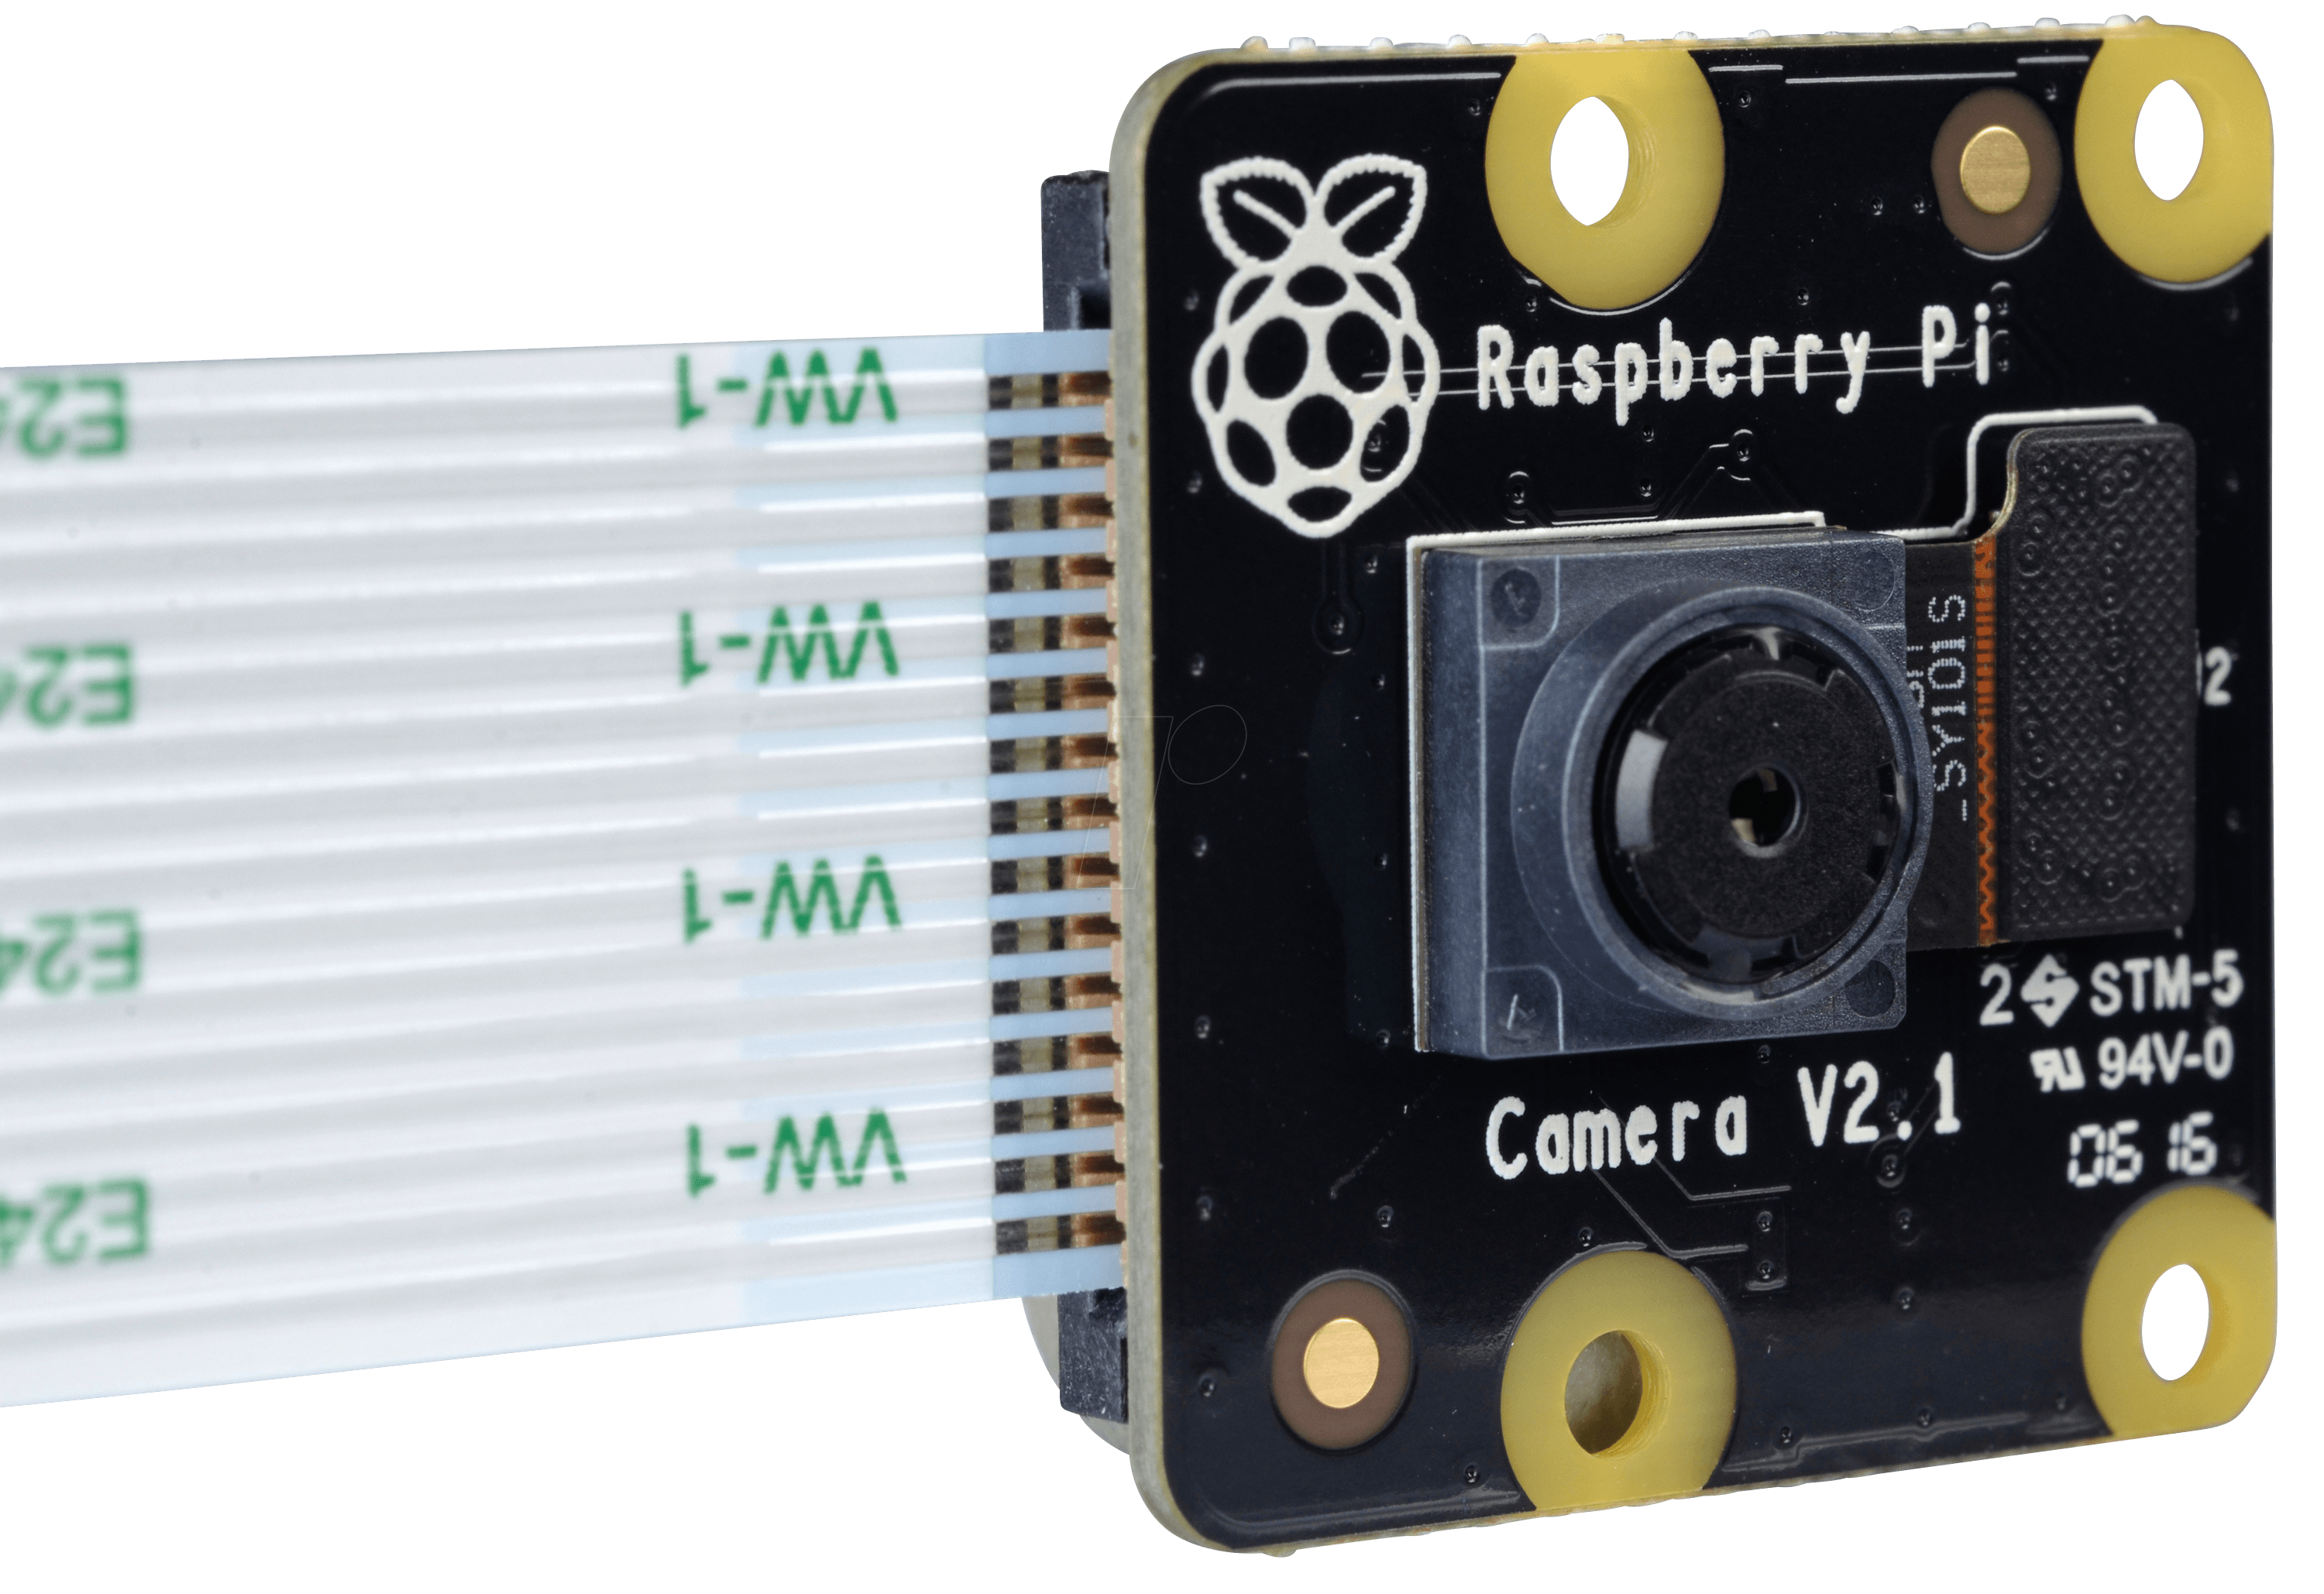 RASP CAN 2 - Raspberry Pi camera v2 IR